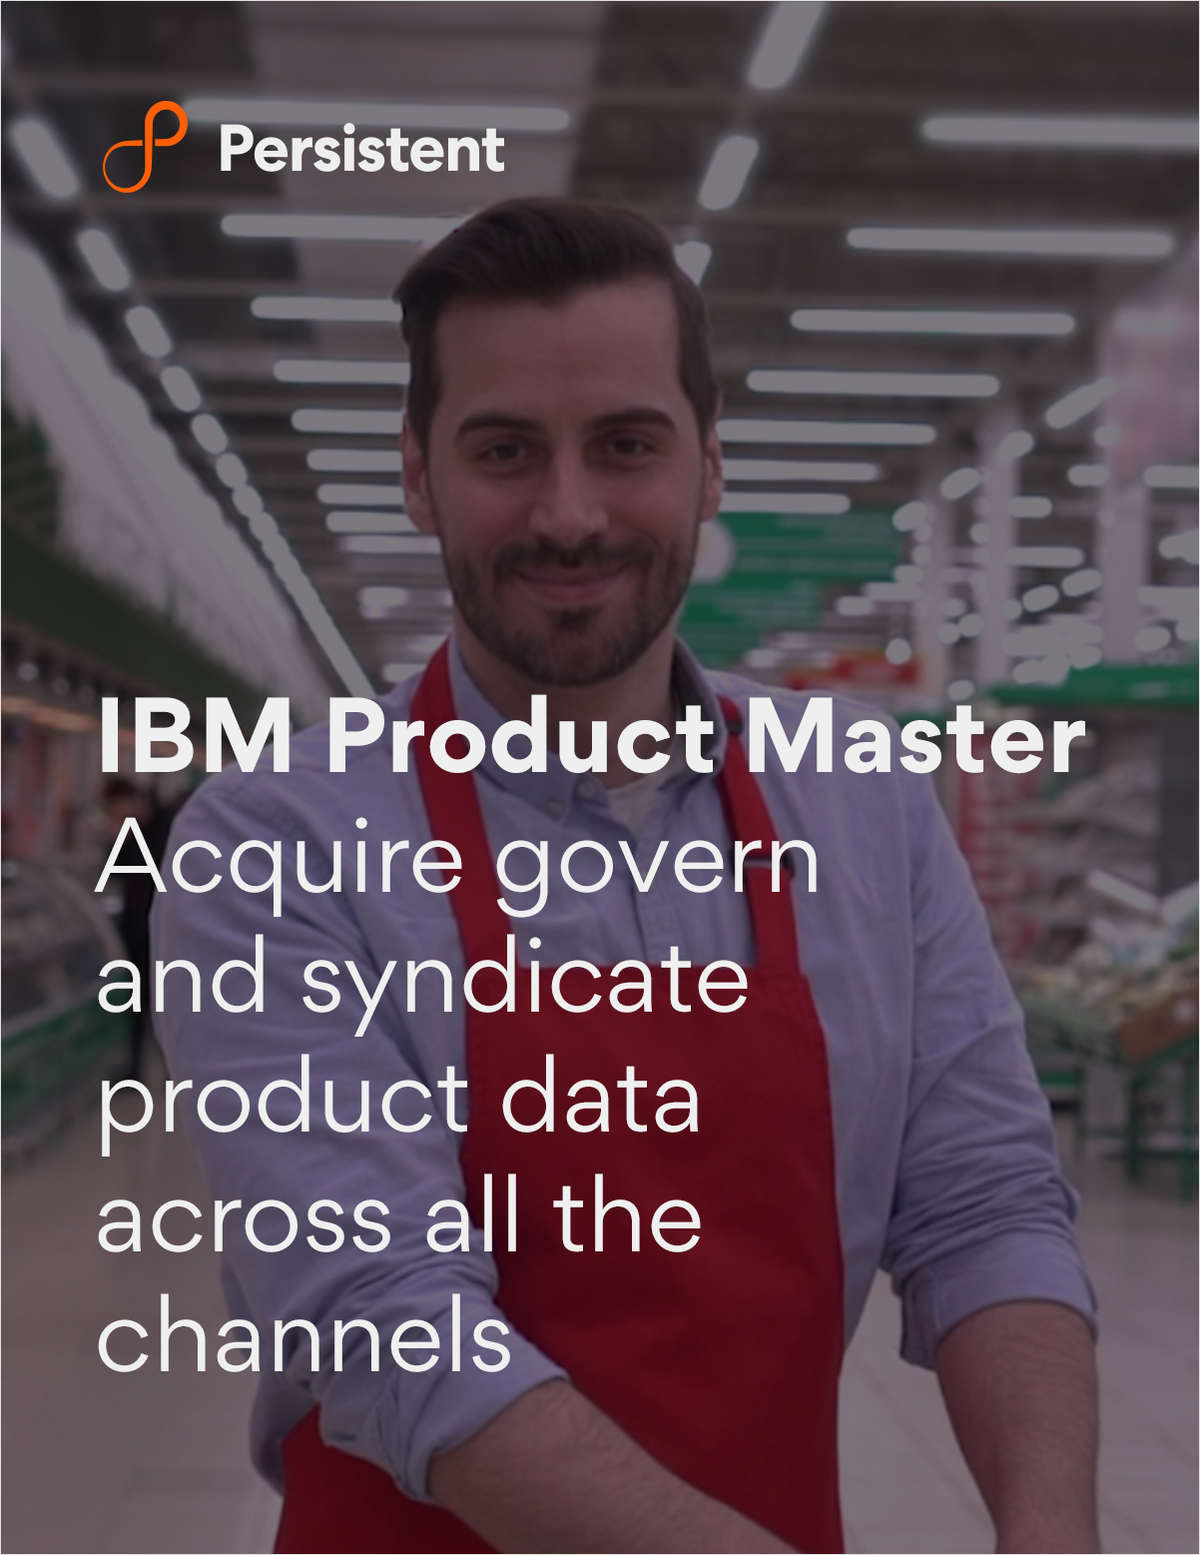 IBM Product Master in Retail (On-Demand Webinar)